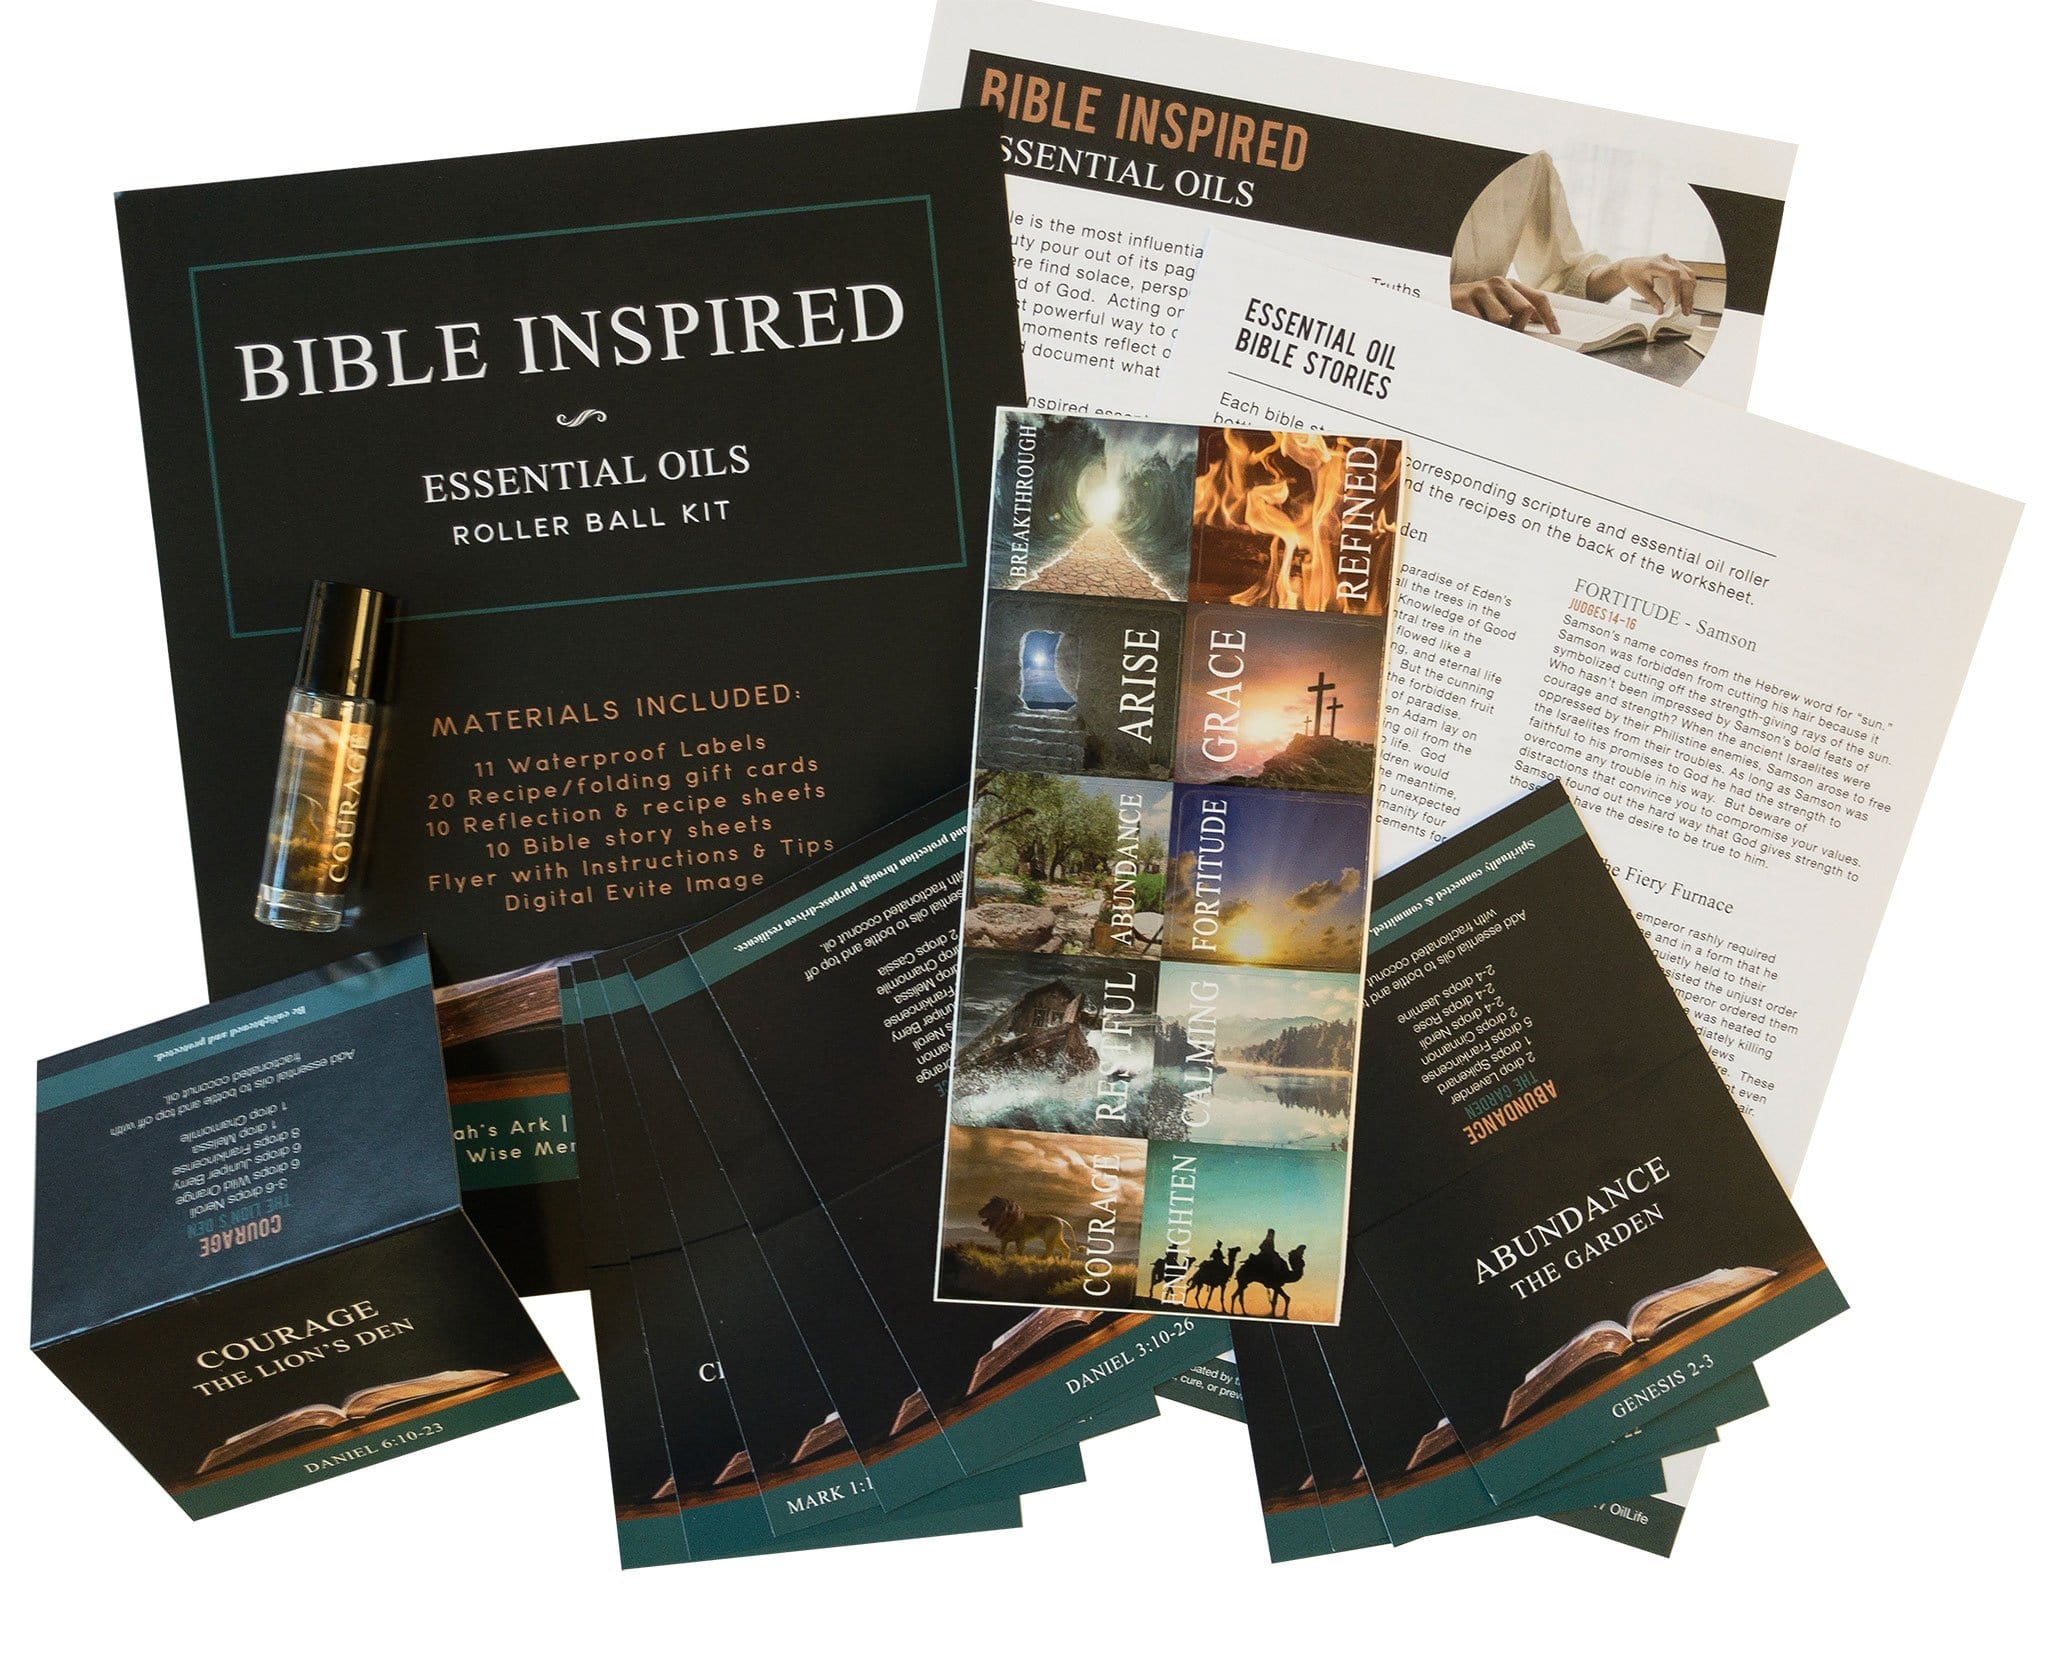 Bible Inspired - Essential Oils Rollerball Kit